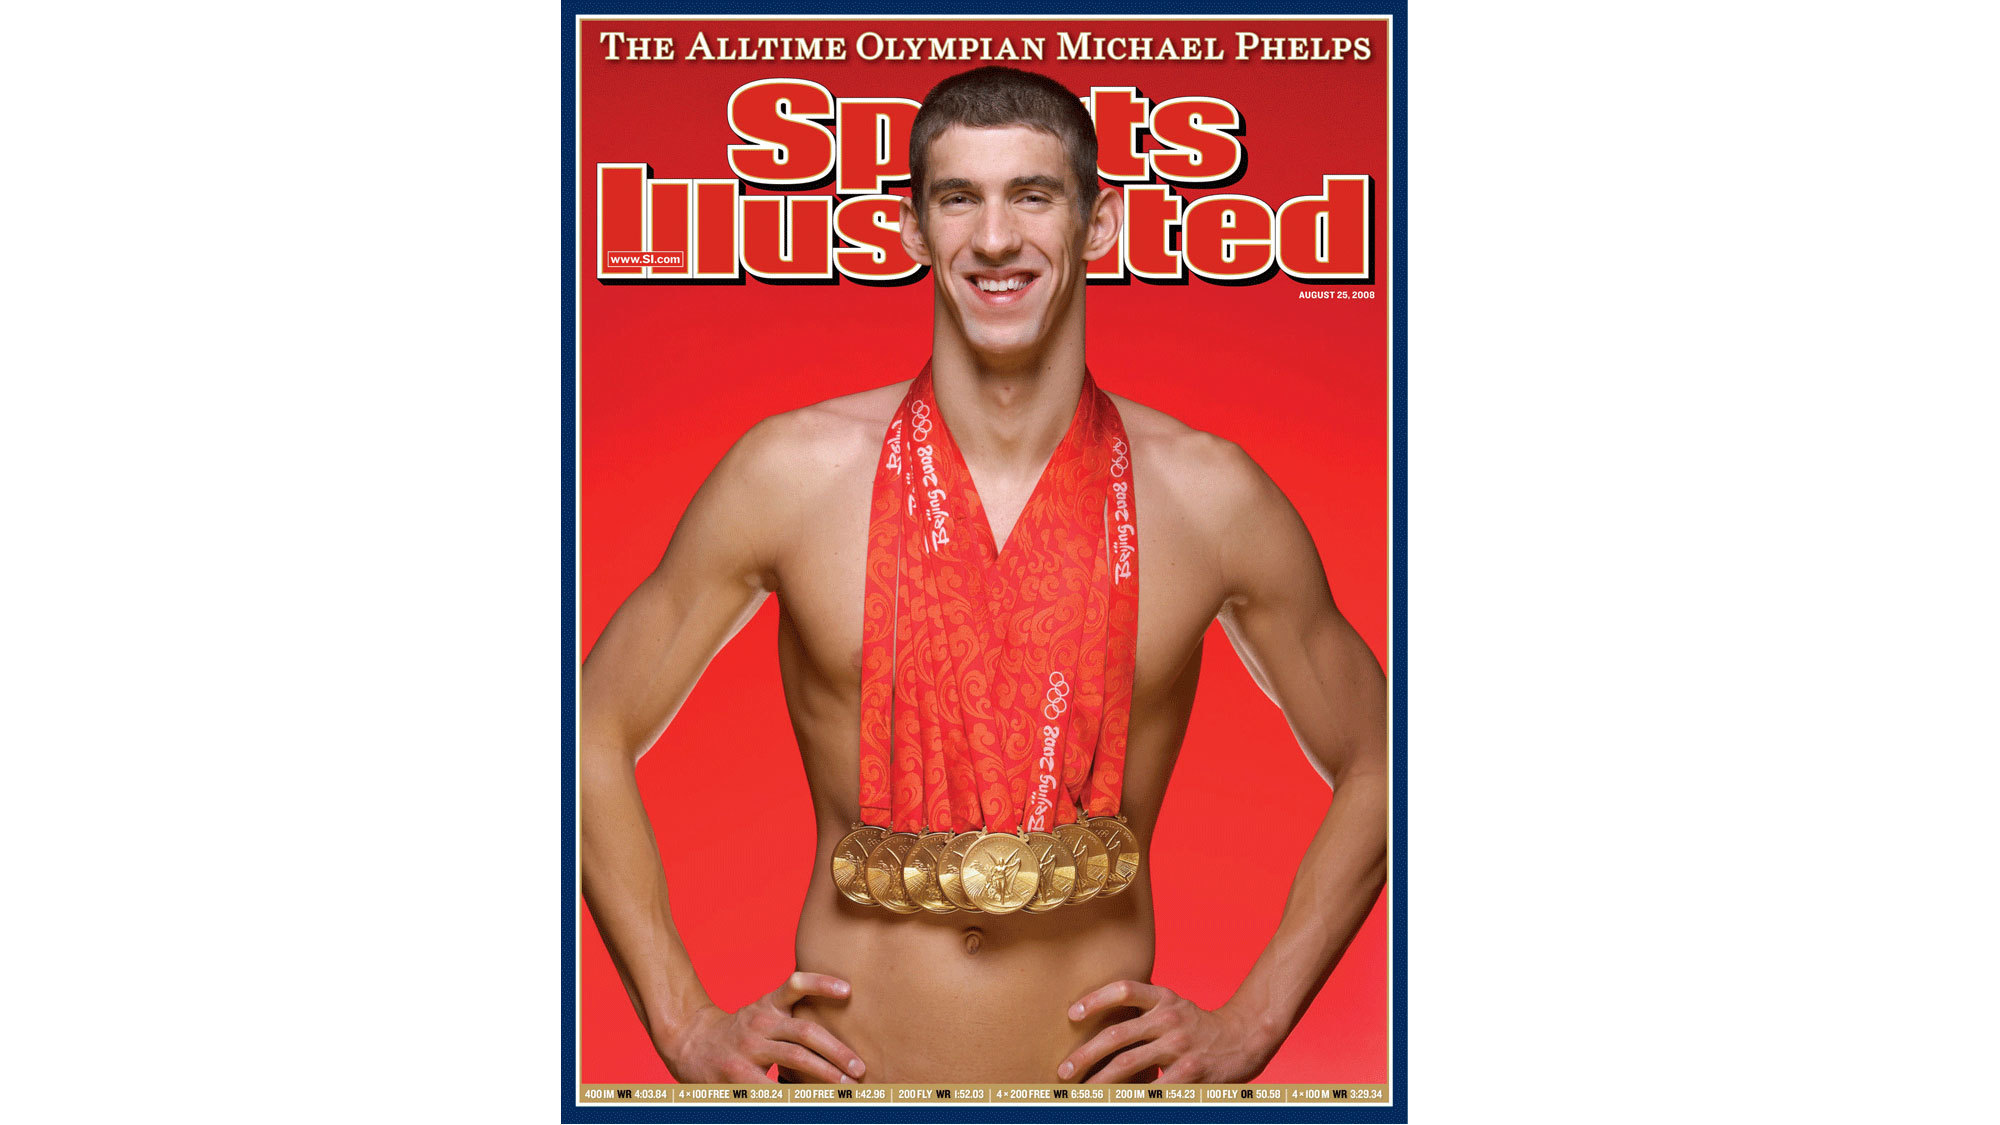 407da8bc964 Michael Phelps wears all eight gold medals he won in the 2008 Beijing  Olympics on the cover of the Aug. 25